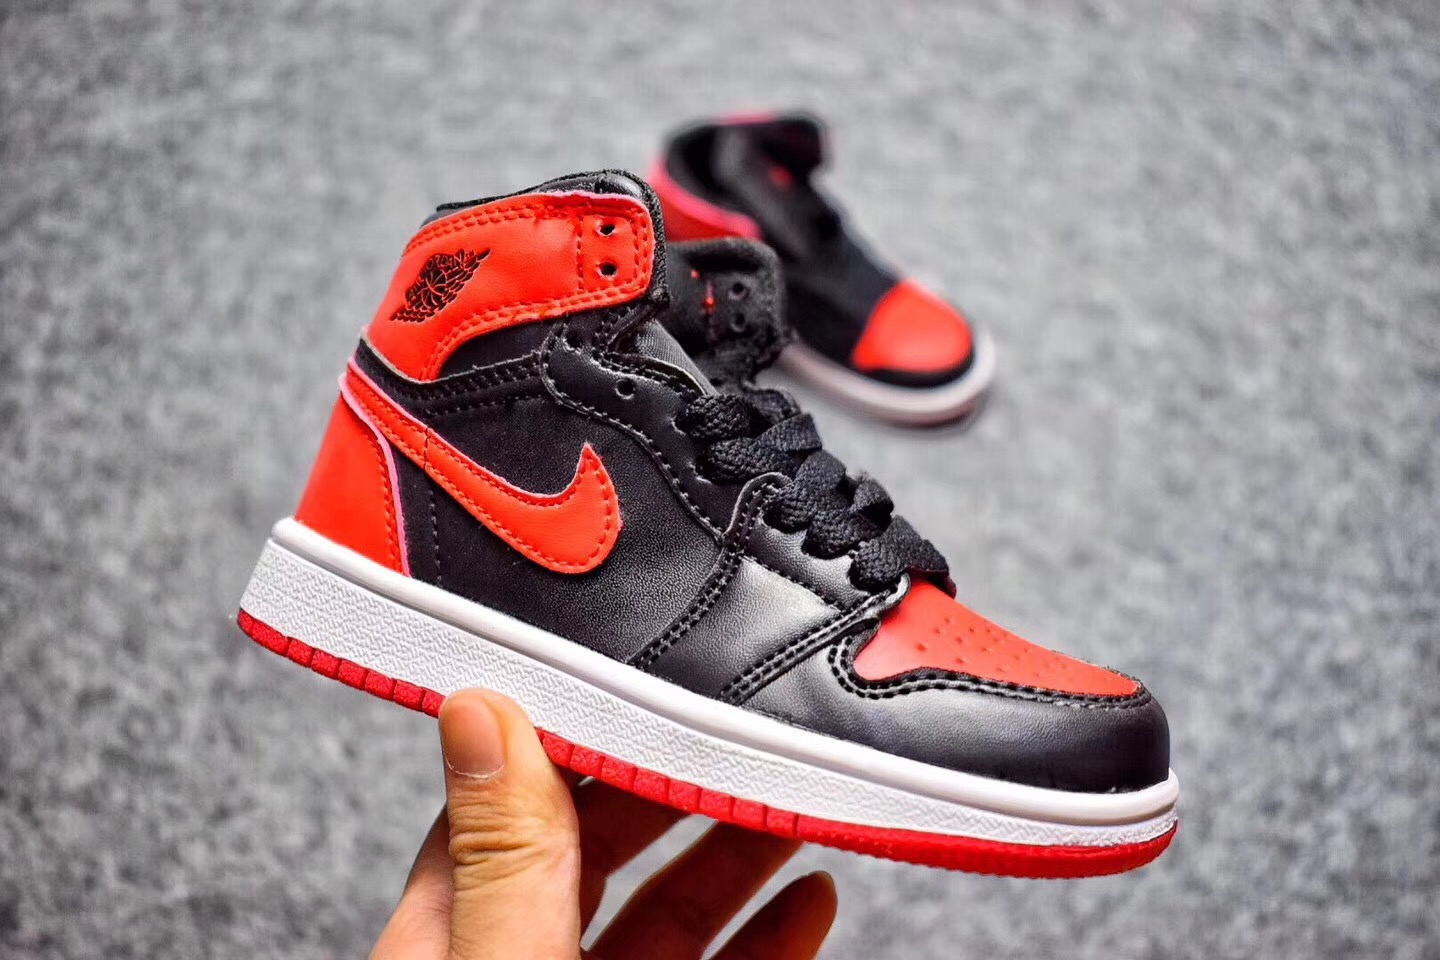 Wholesale Cheap 2017 Kids Air Jordan 1 Banned Black Varsity Red-White For Sale - www.wholesaleflyknit.com